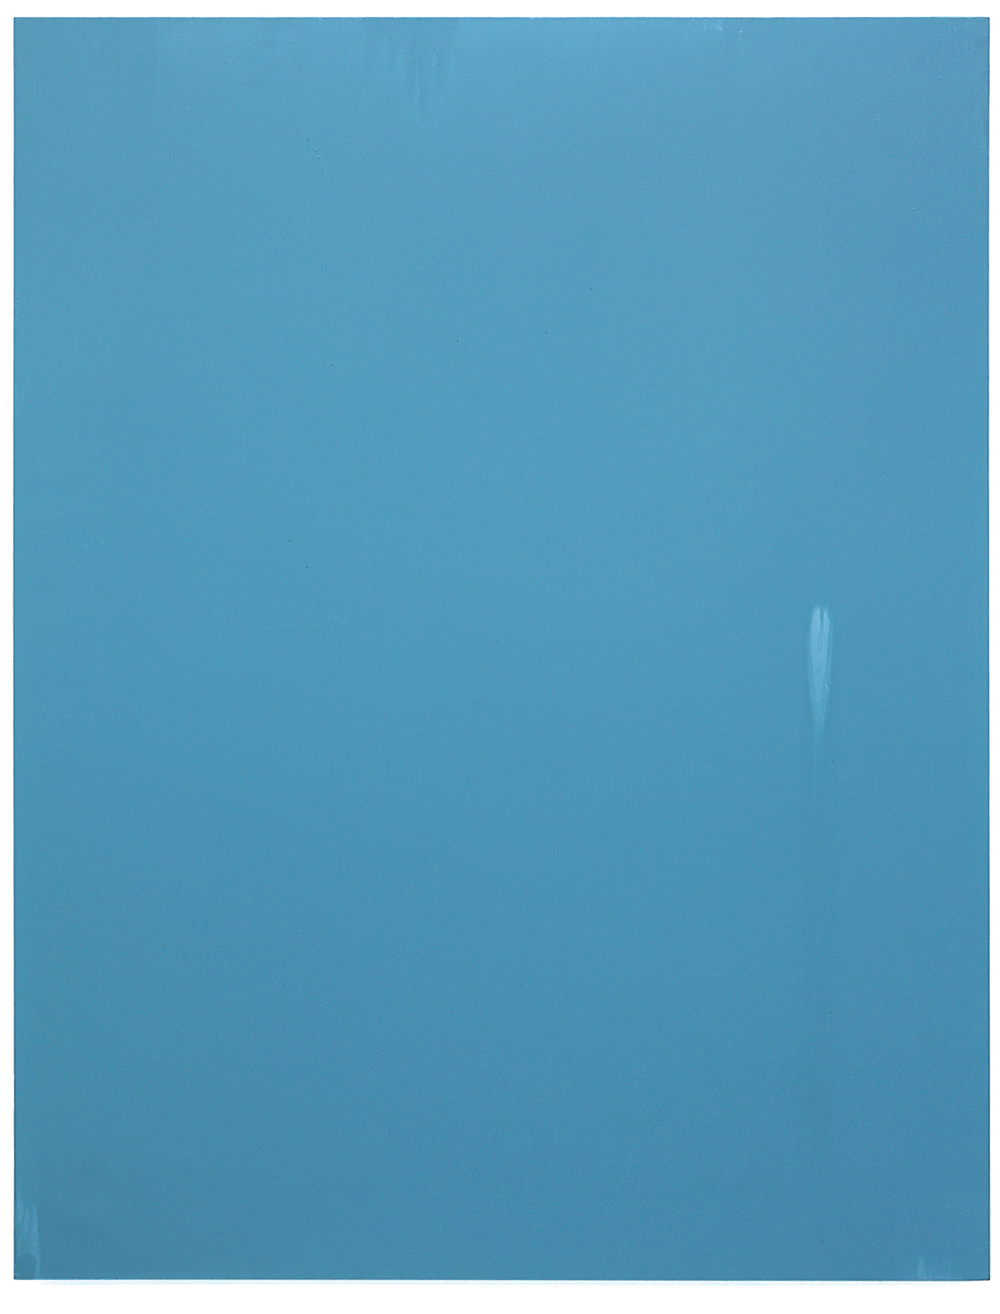 Luke HENG Blue on White 2015 Oil on linen H150 x W115 x D5 cm